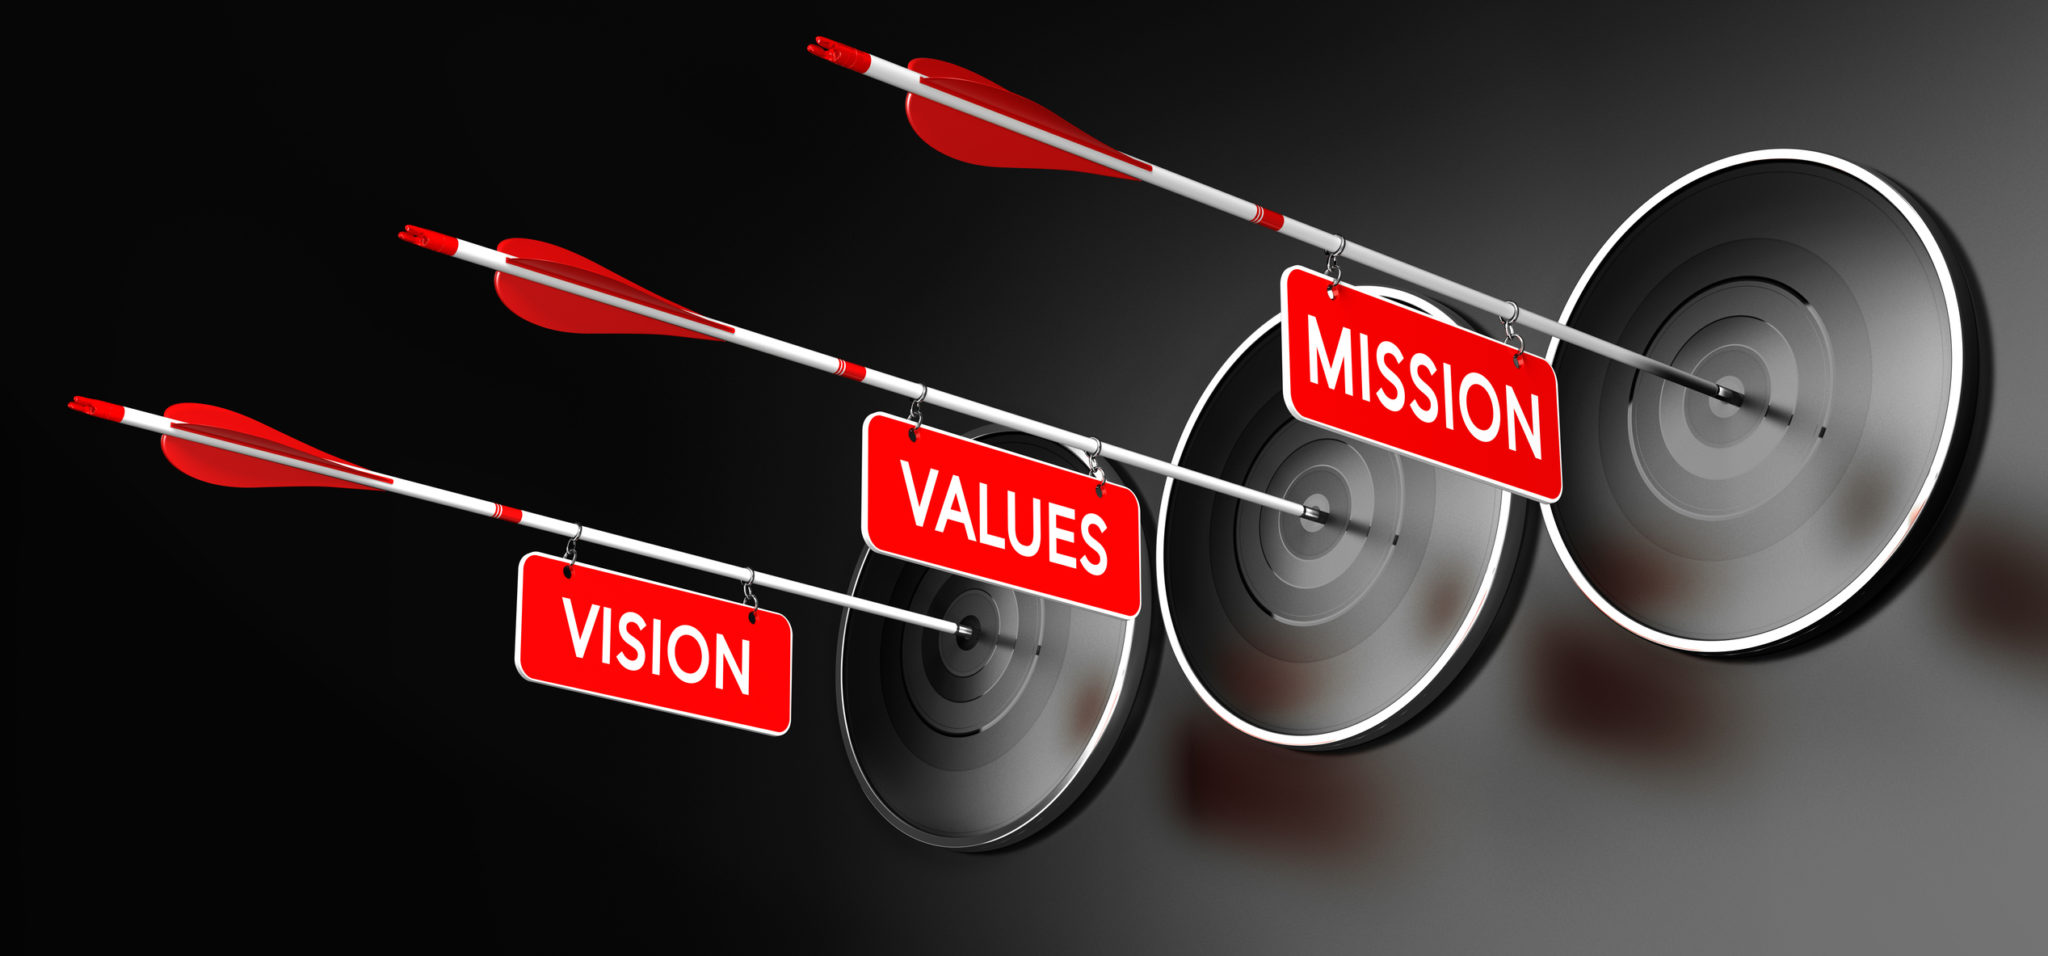 Mission, Vision and Values Statements